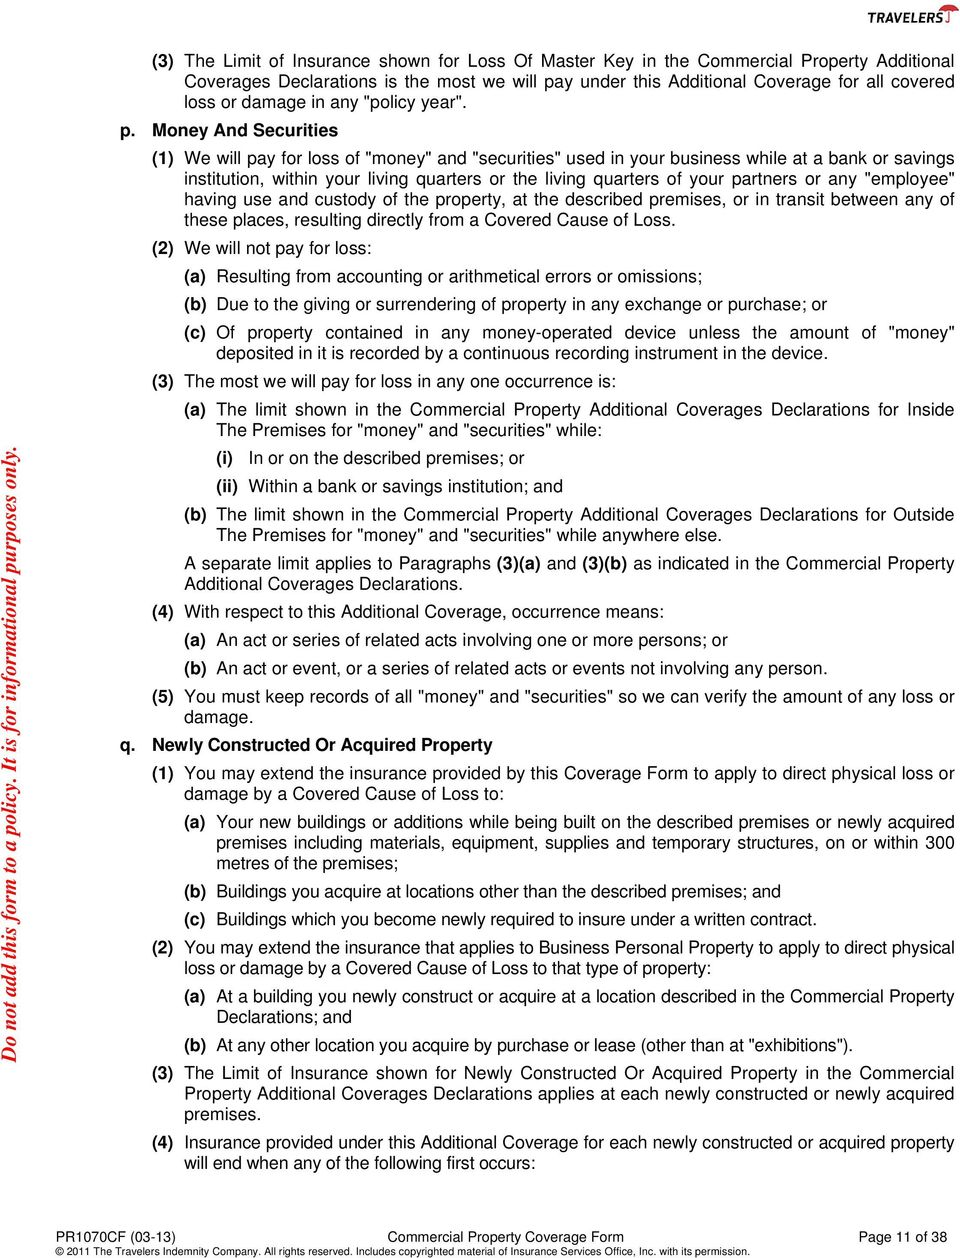 COMMERCIAL PROPERTY COVERAGE FORM - PDF